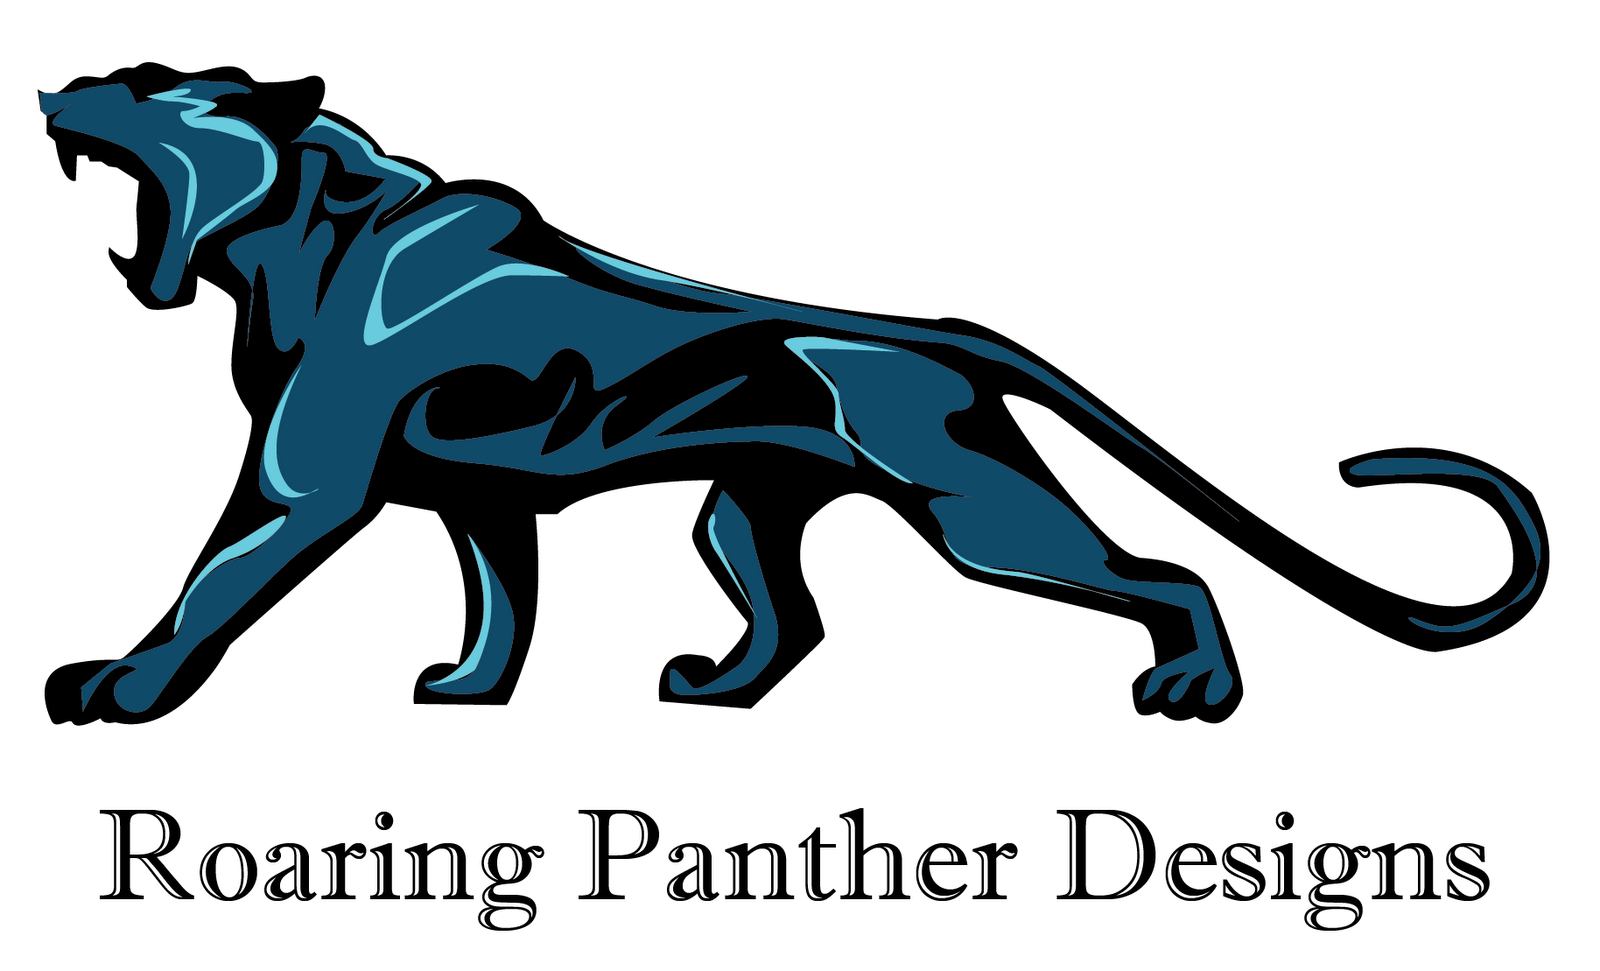 How To Draw Panthers Logo